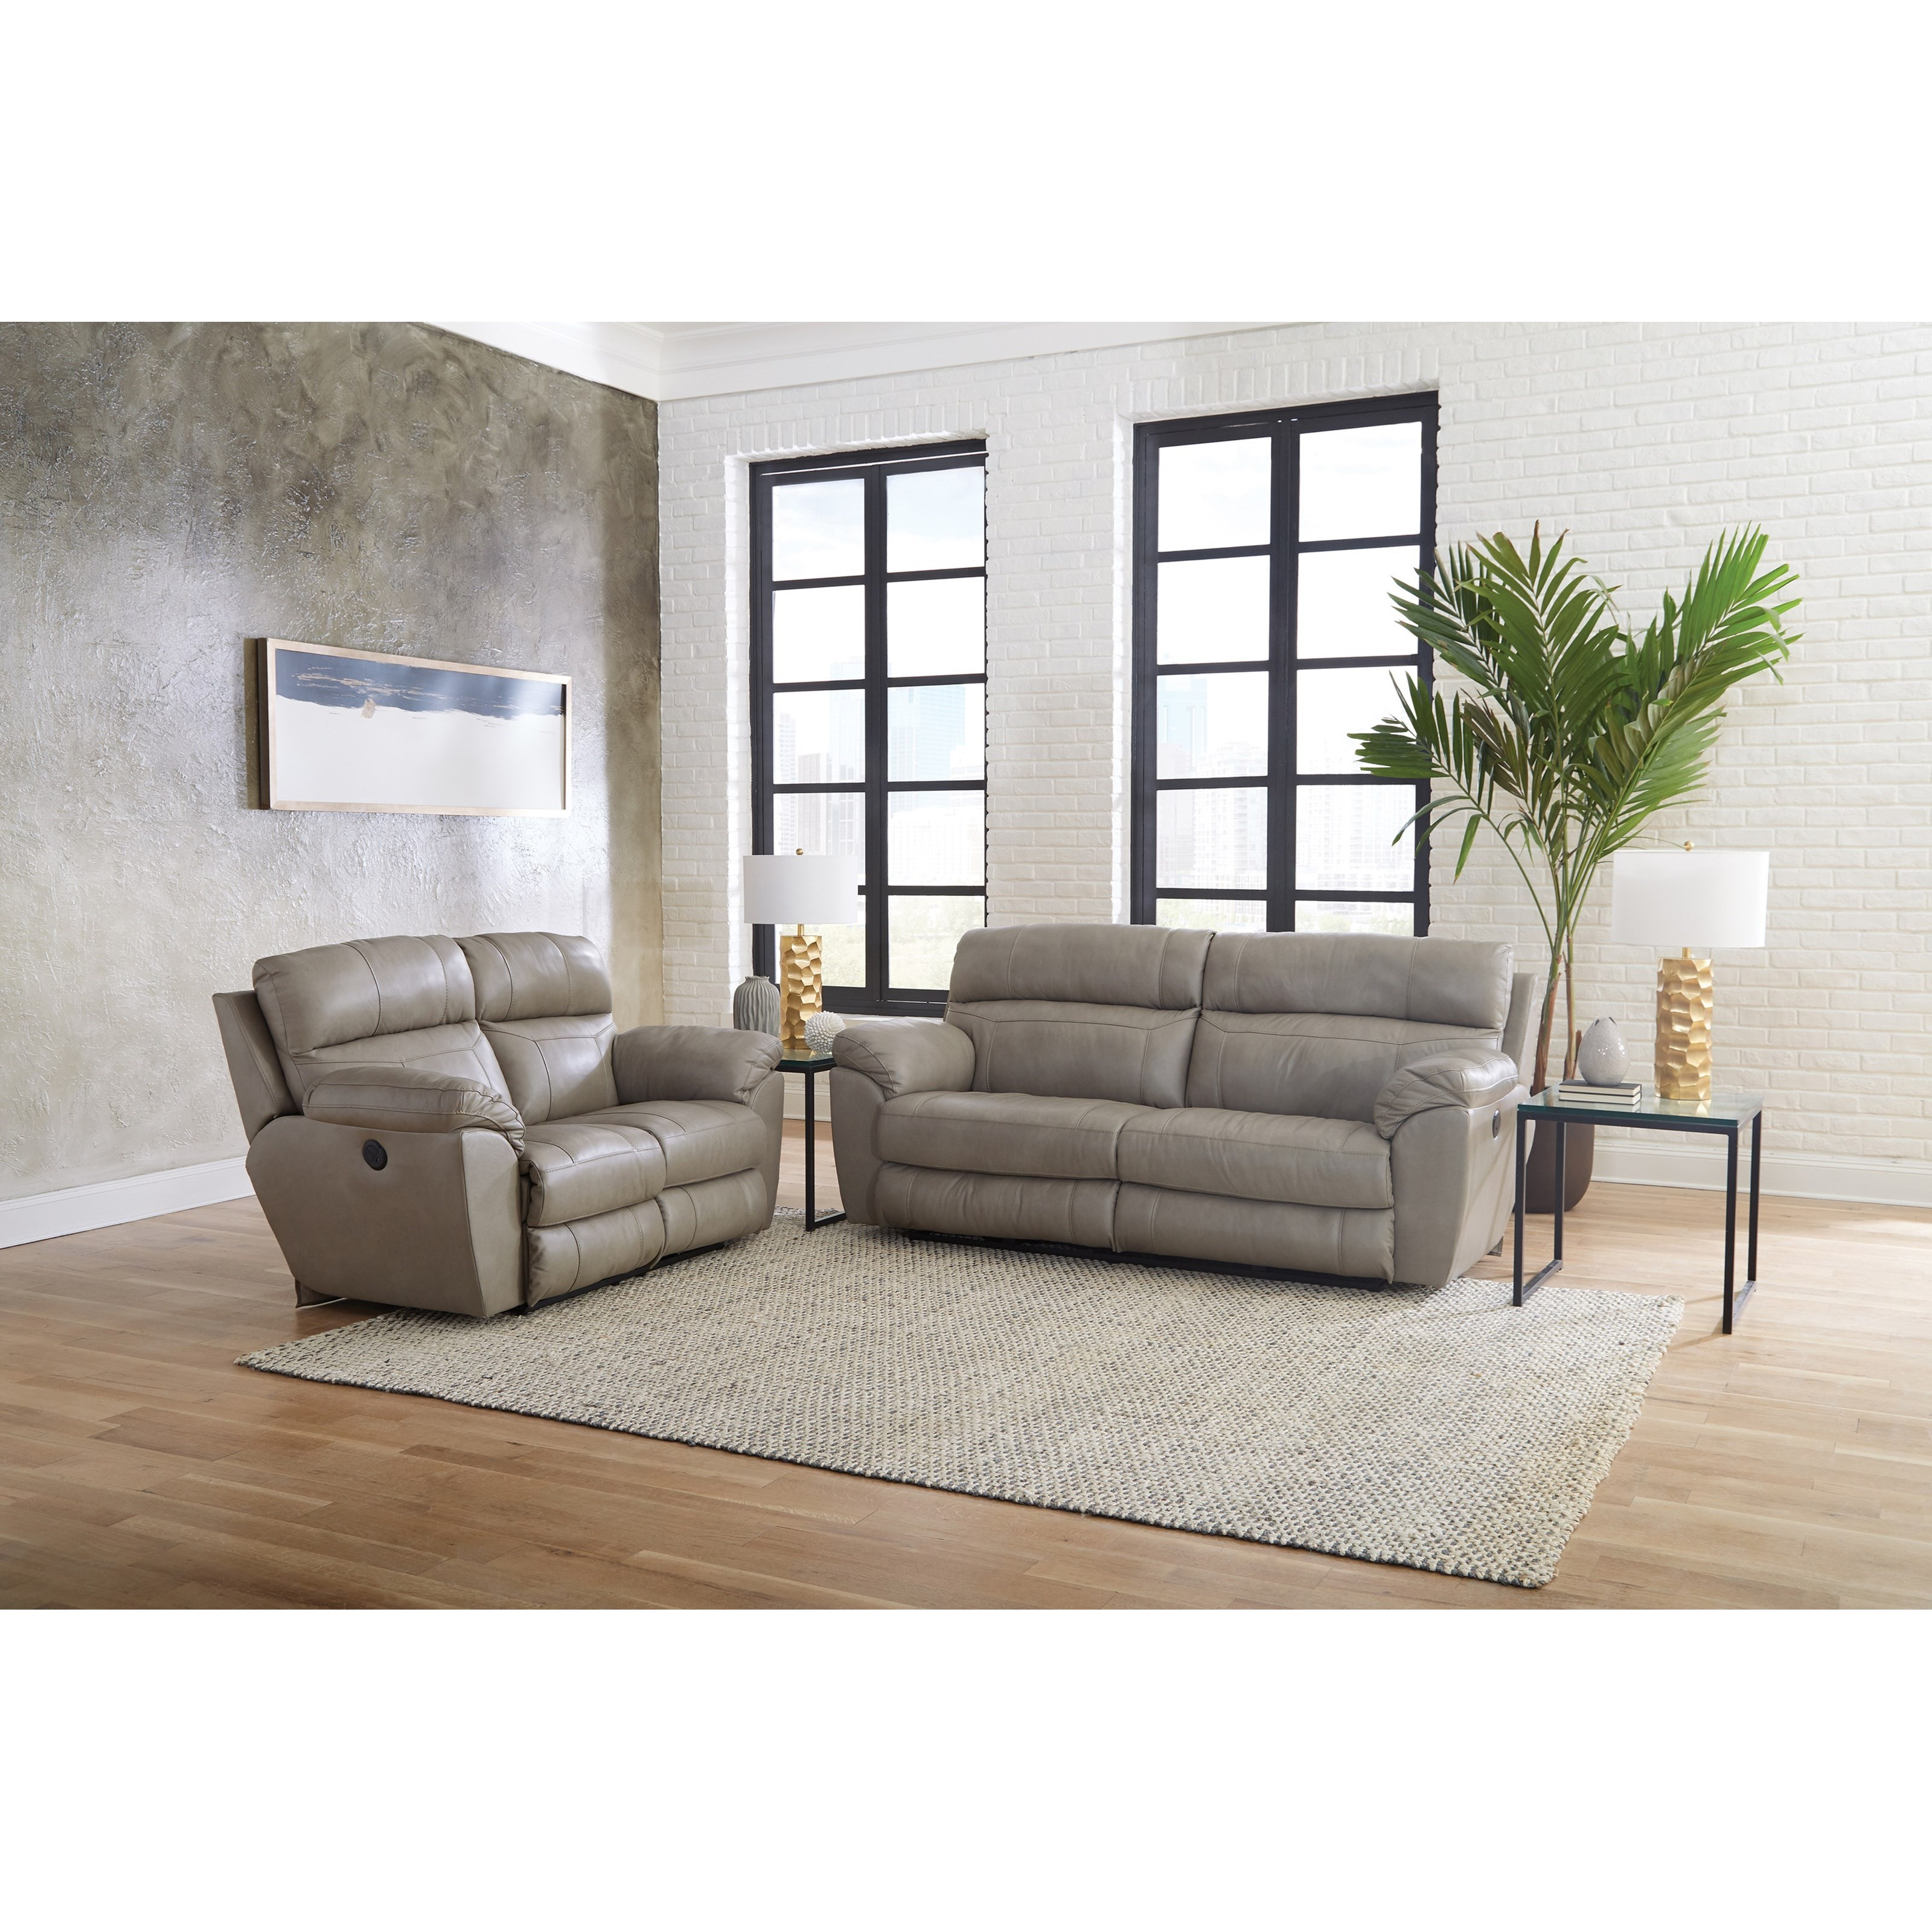 Costa Power Reclining Living Room Group by Catnapper at Northeast Factory Direct